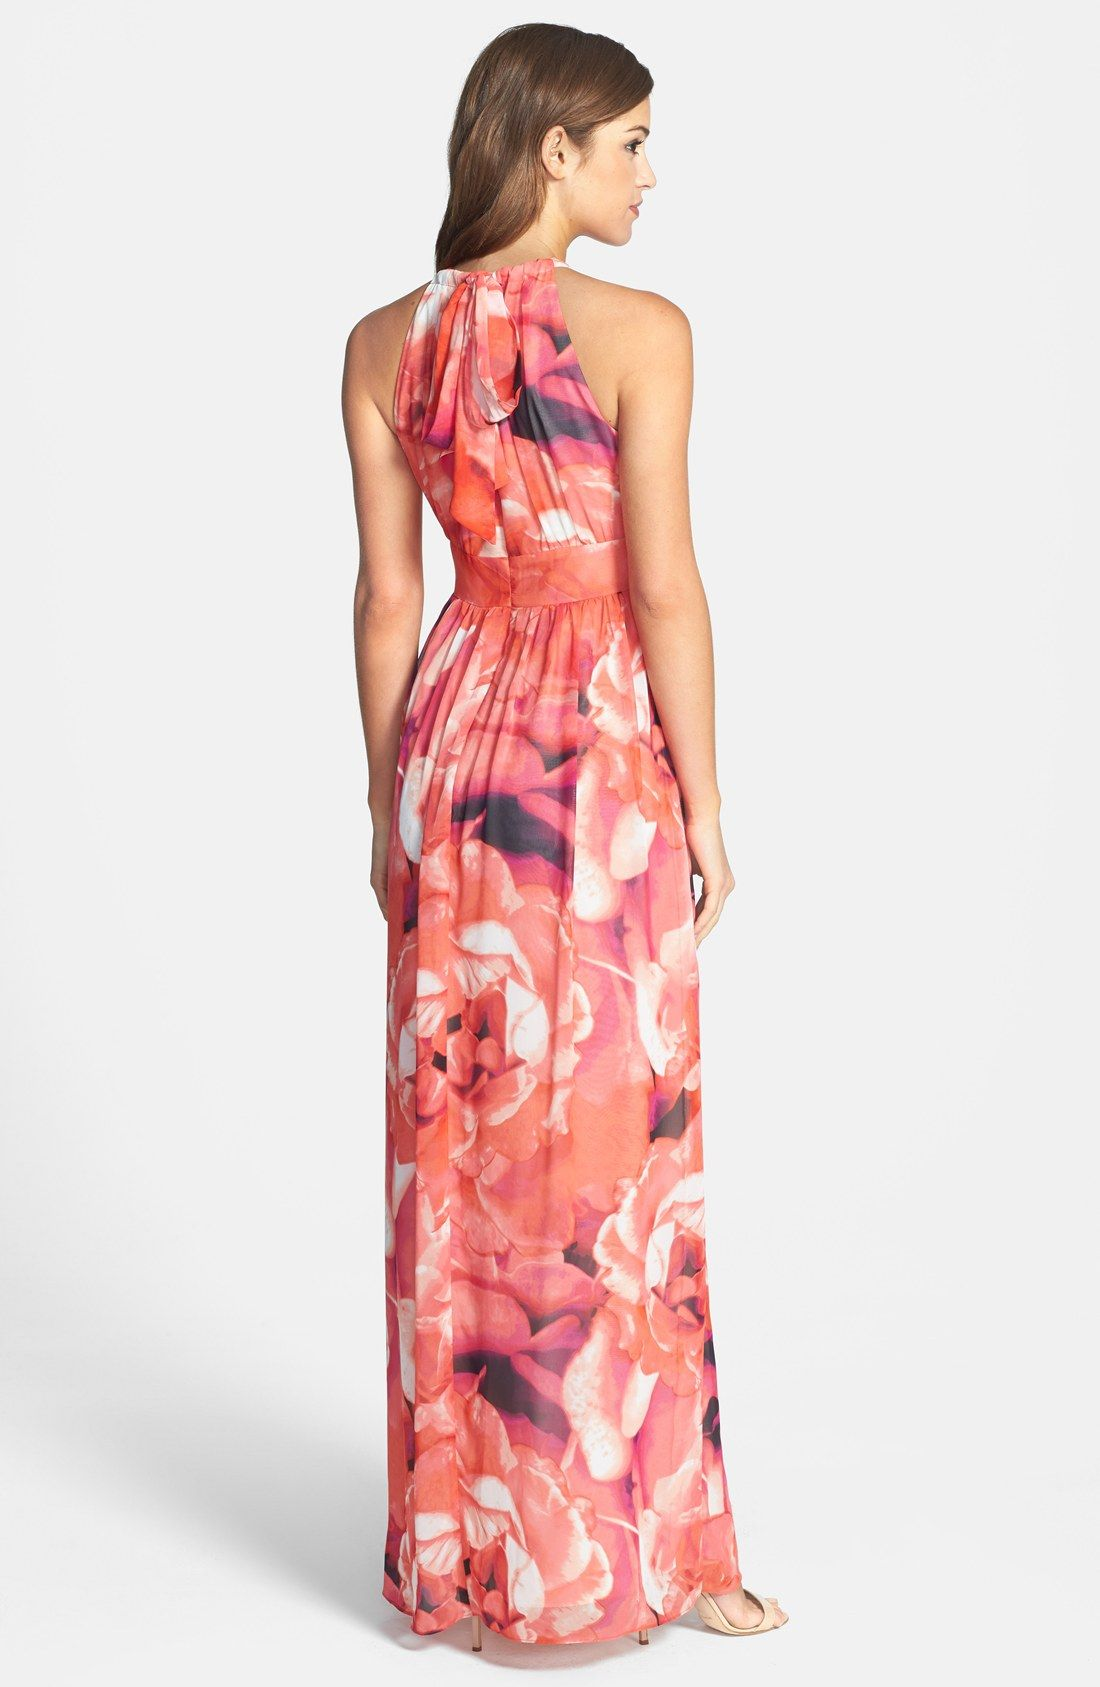 Lovely pink chiffon maxi dress. | Top Pins: Nordstrom.com ...